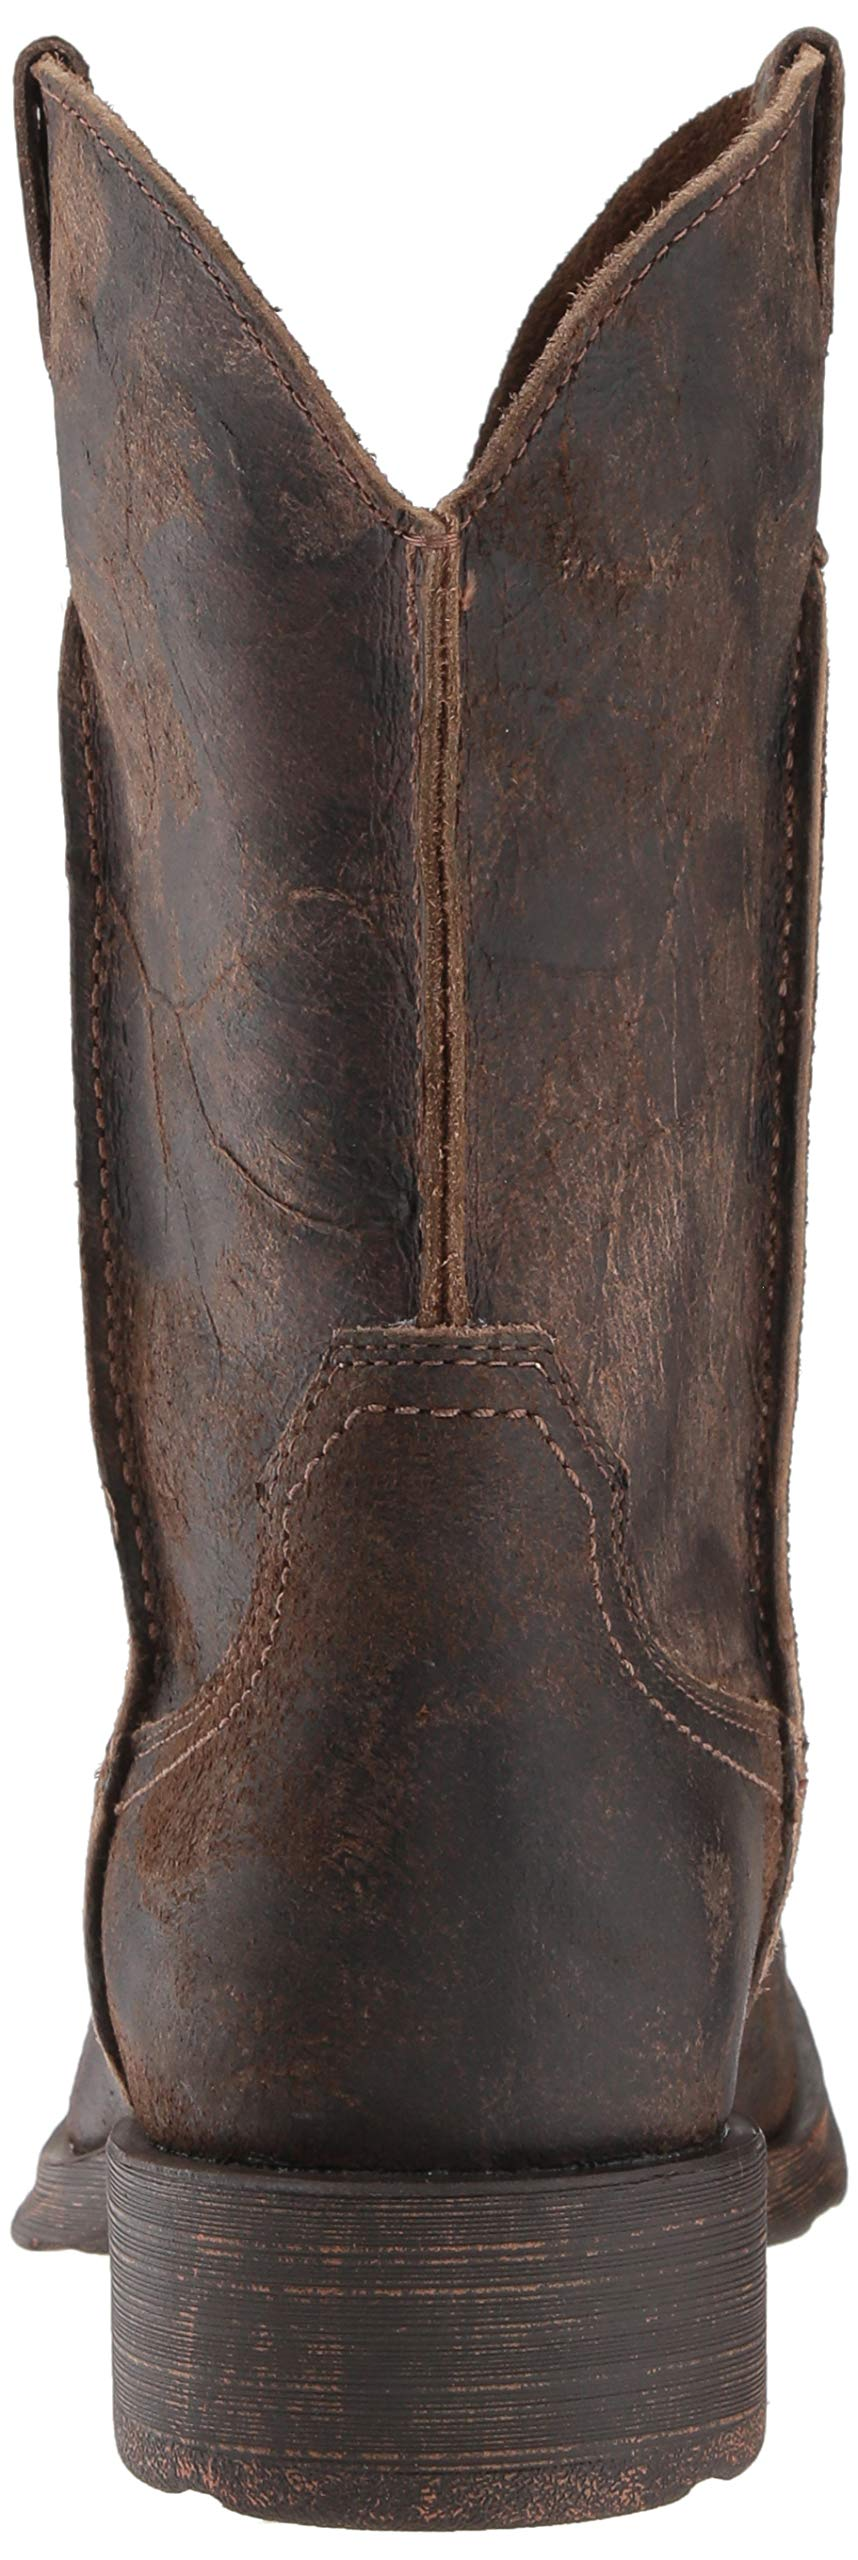 Ariat Men's Rambler Western Boot, Antiqued Grey, 13 2E US by ARIAT (Image #2)